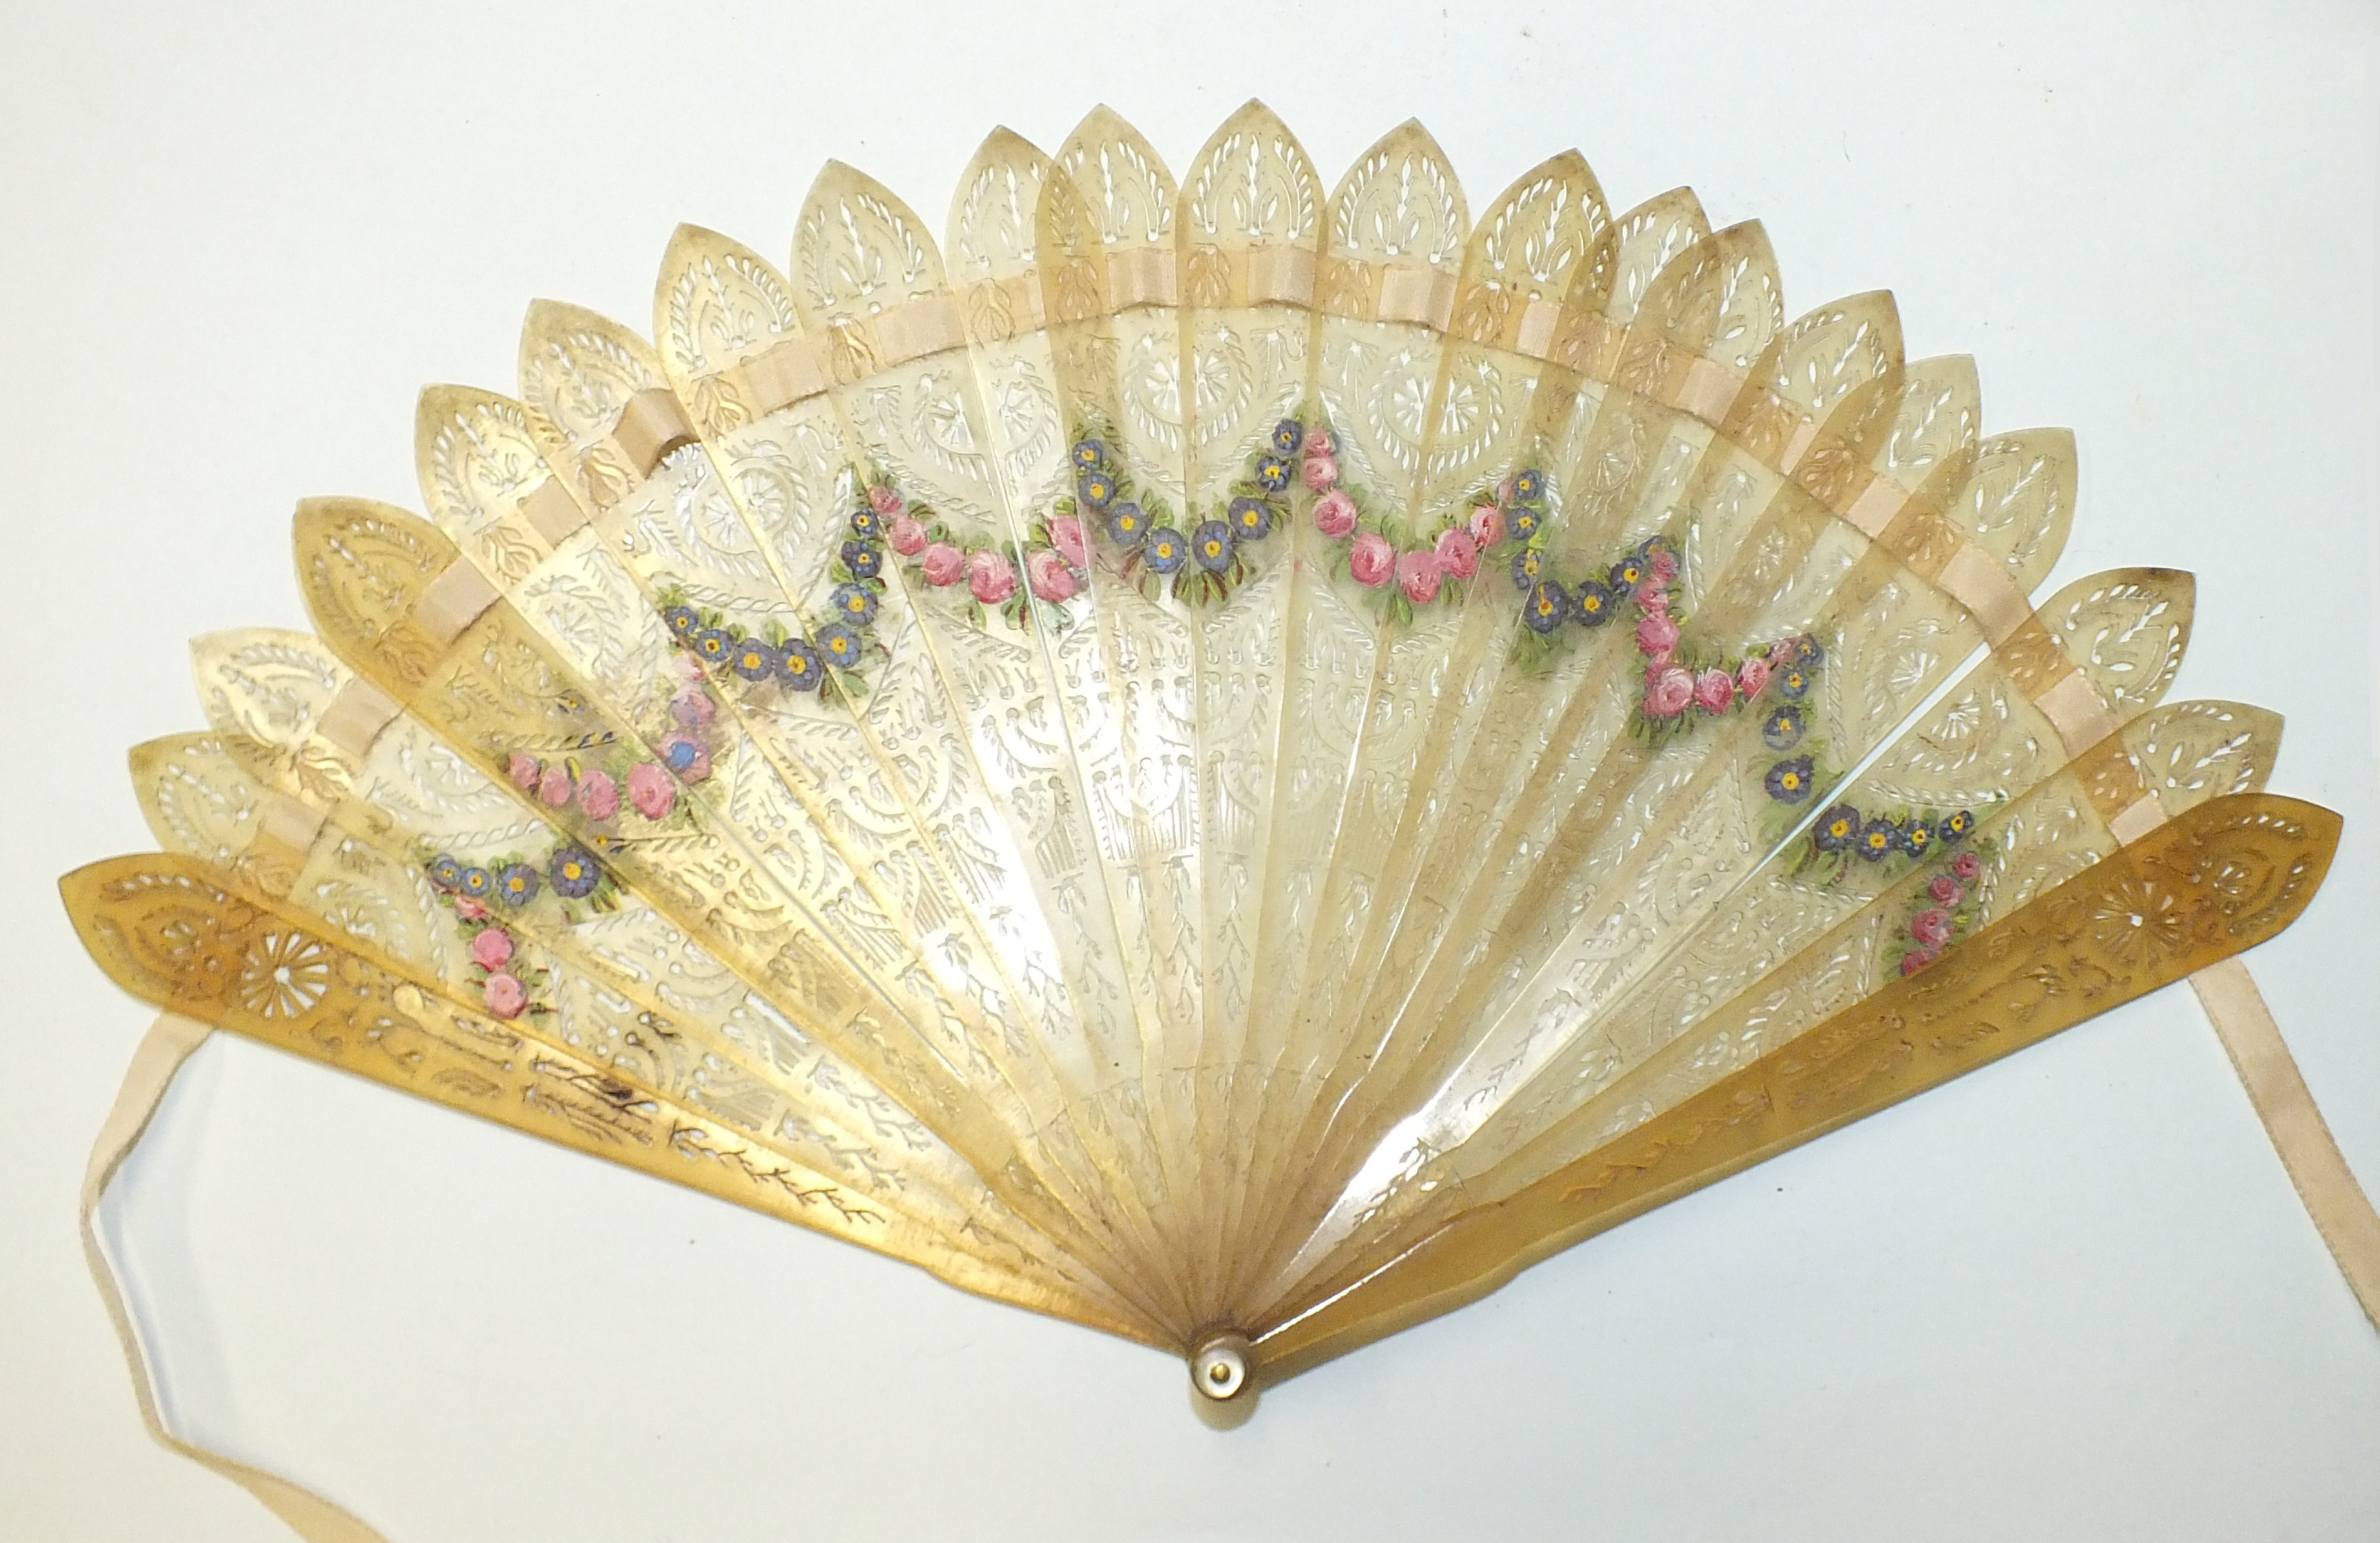 Lot 521 - A 19th century horn brisé fan with painted swags of flowers on each side, guard length 15.5cm,